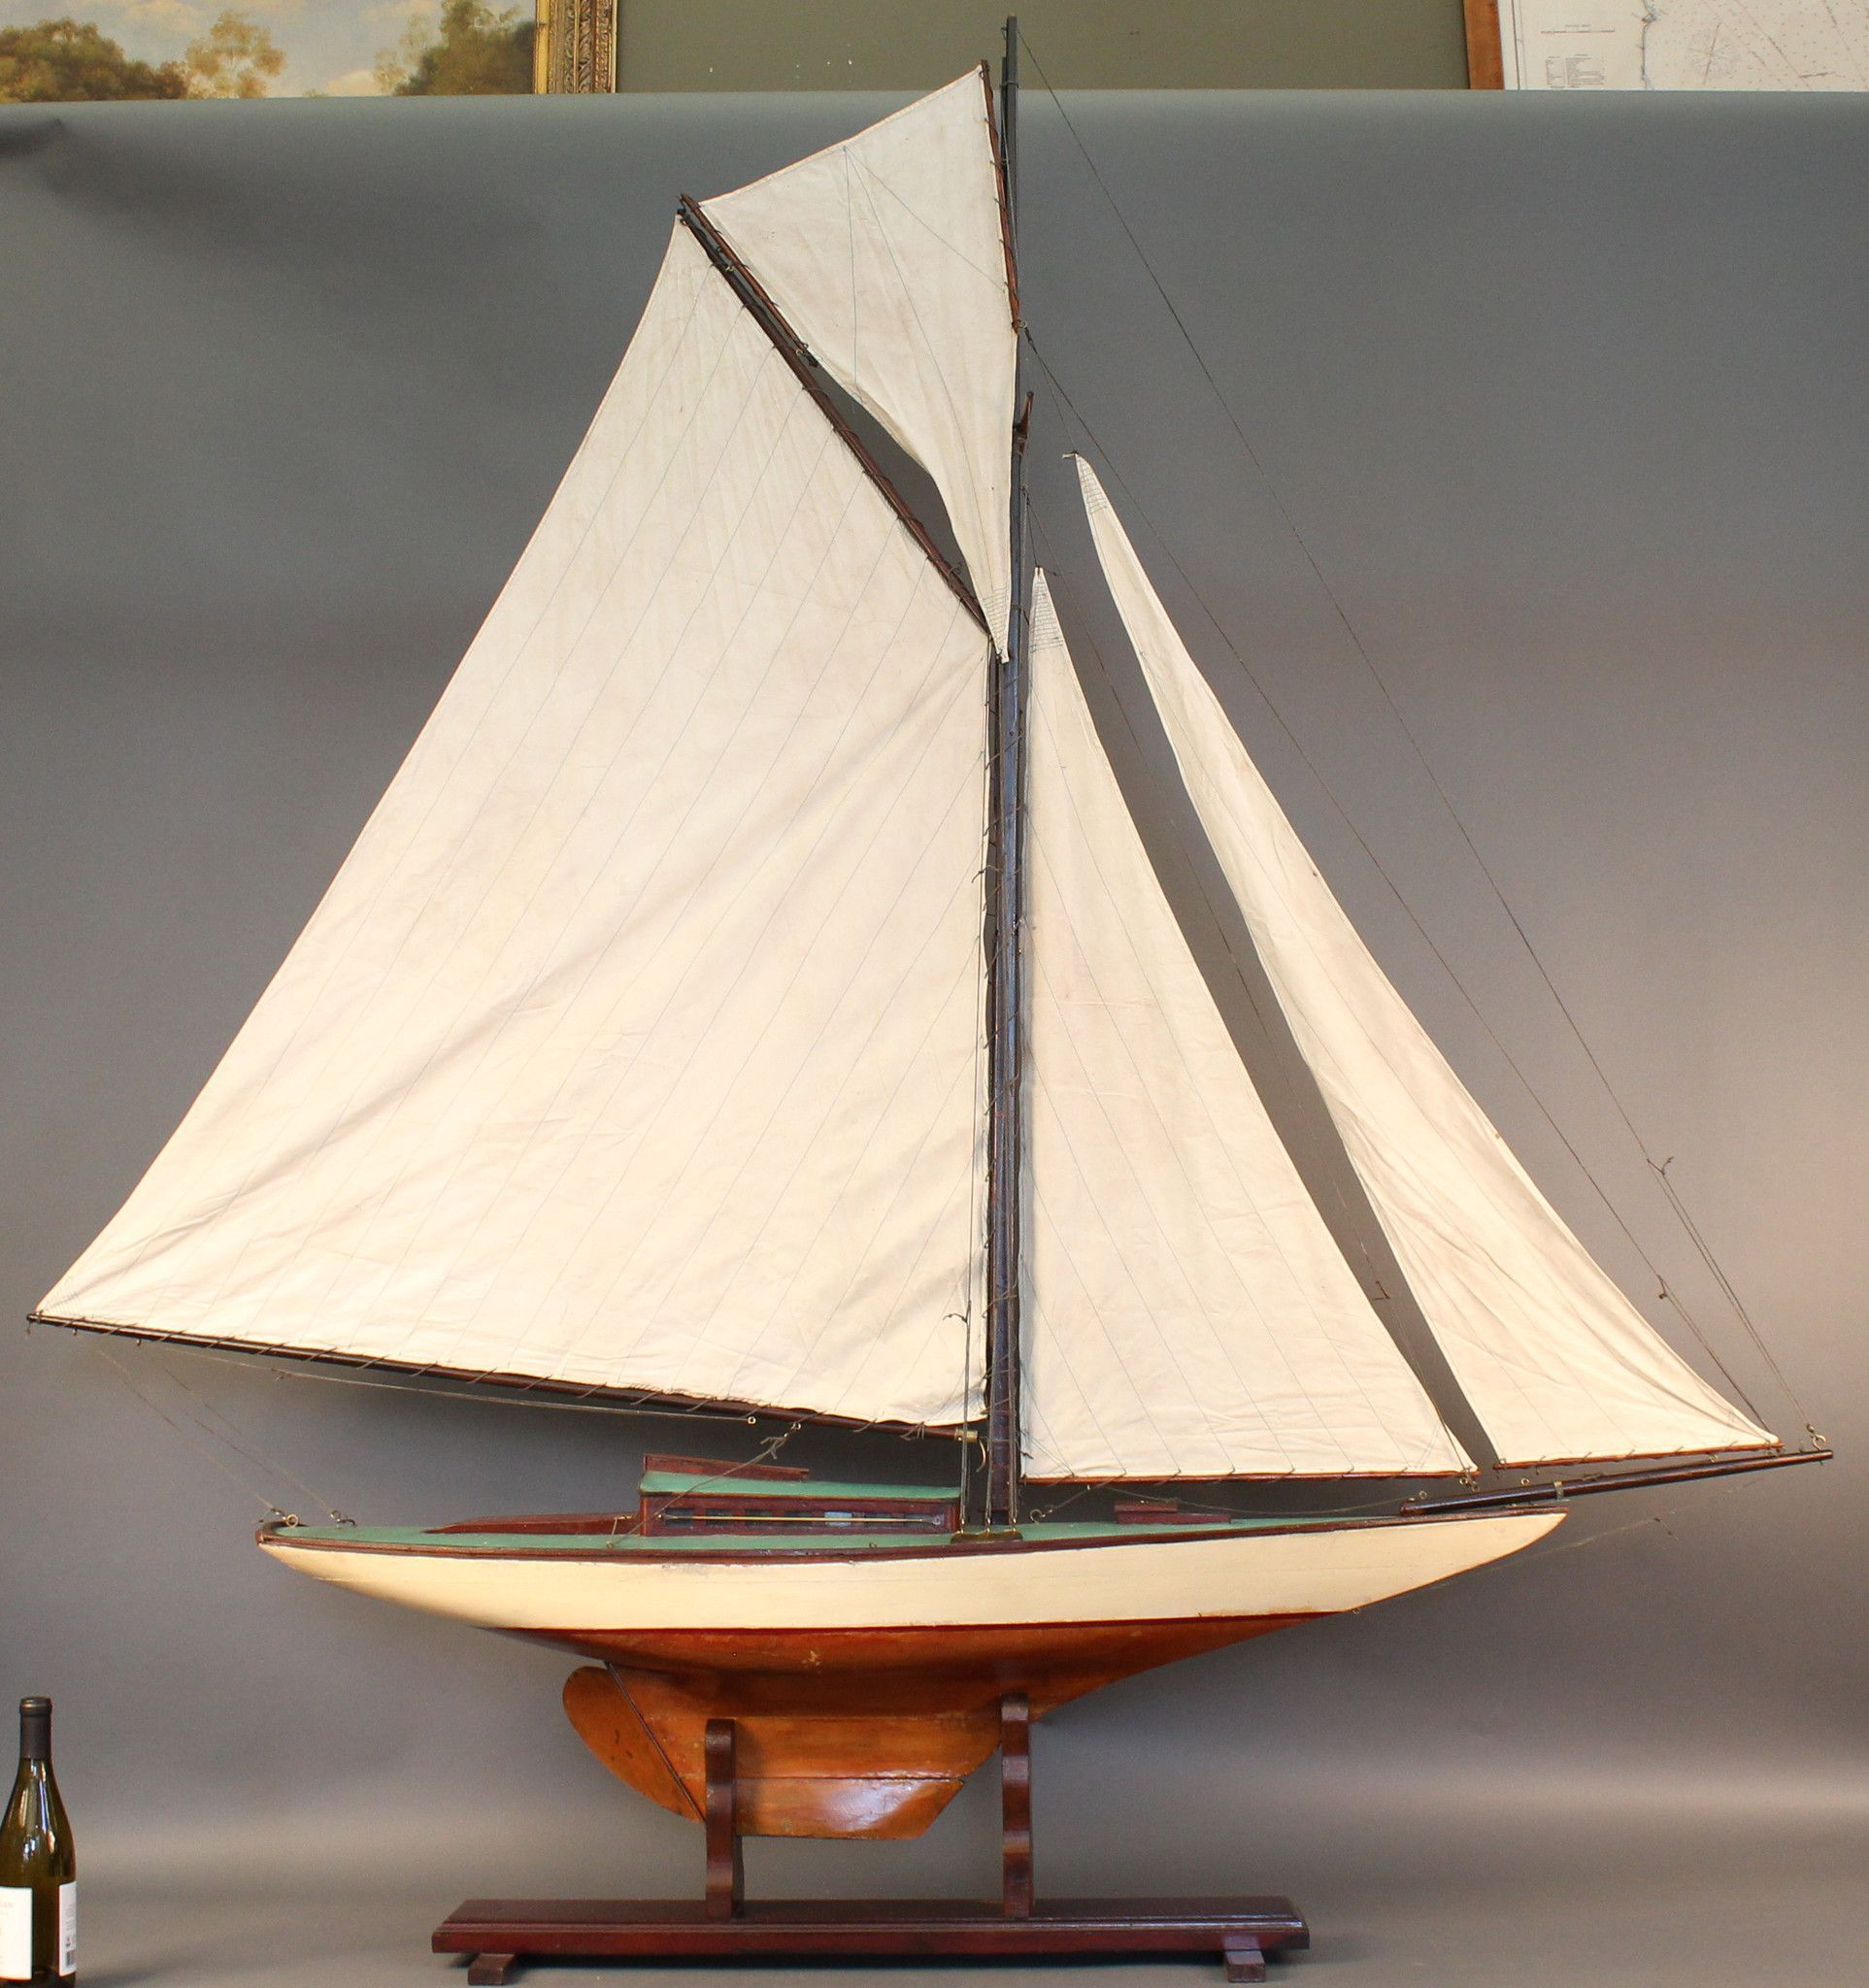 Gaff Rigged Pond Yacht of a Sloop | model yachts in 2019